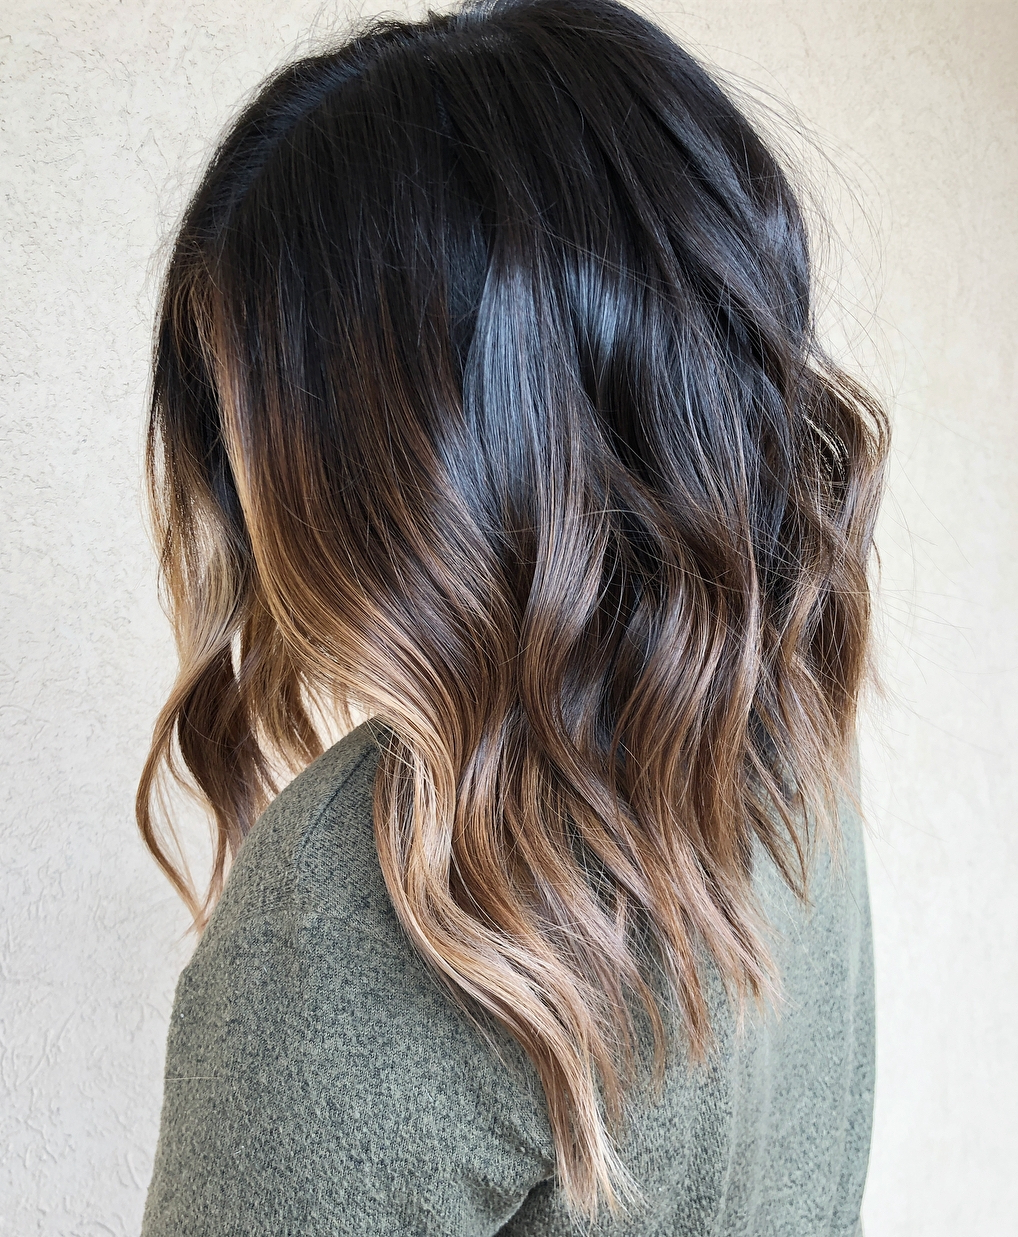 20 Best Face Framing Highlights For Every Base Color And With Regard To Most Recent Wavy Lob Hairstyles With Face Framing Highlights (View 1 of 20)